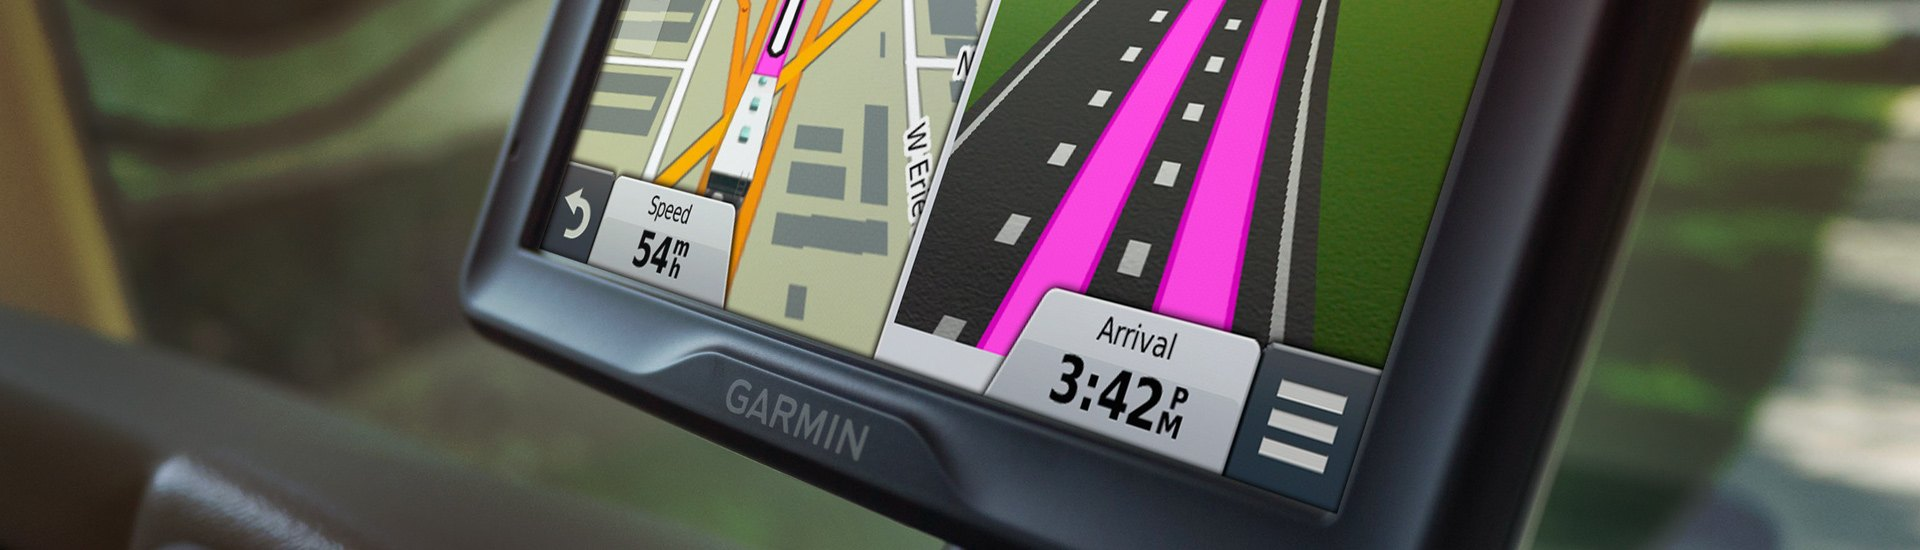 GPS Navigation Systems | Navigators, Mounts, Accessories — CARiD com